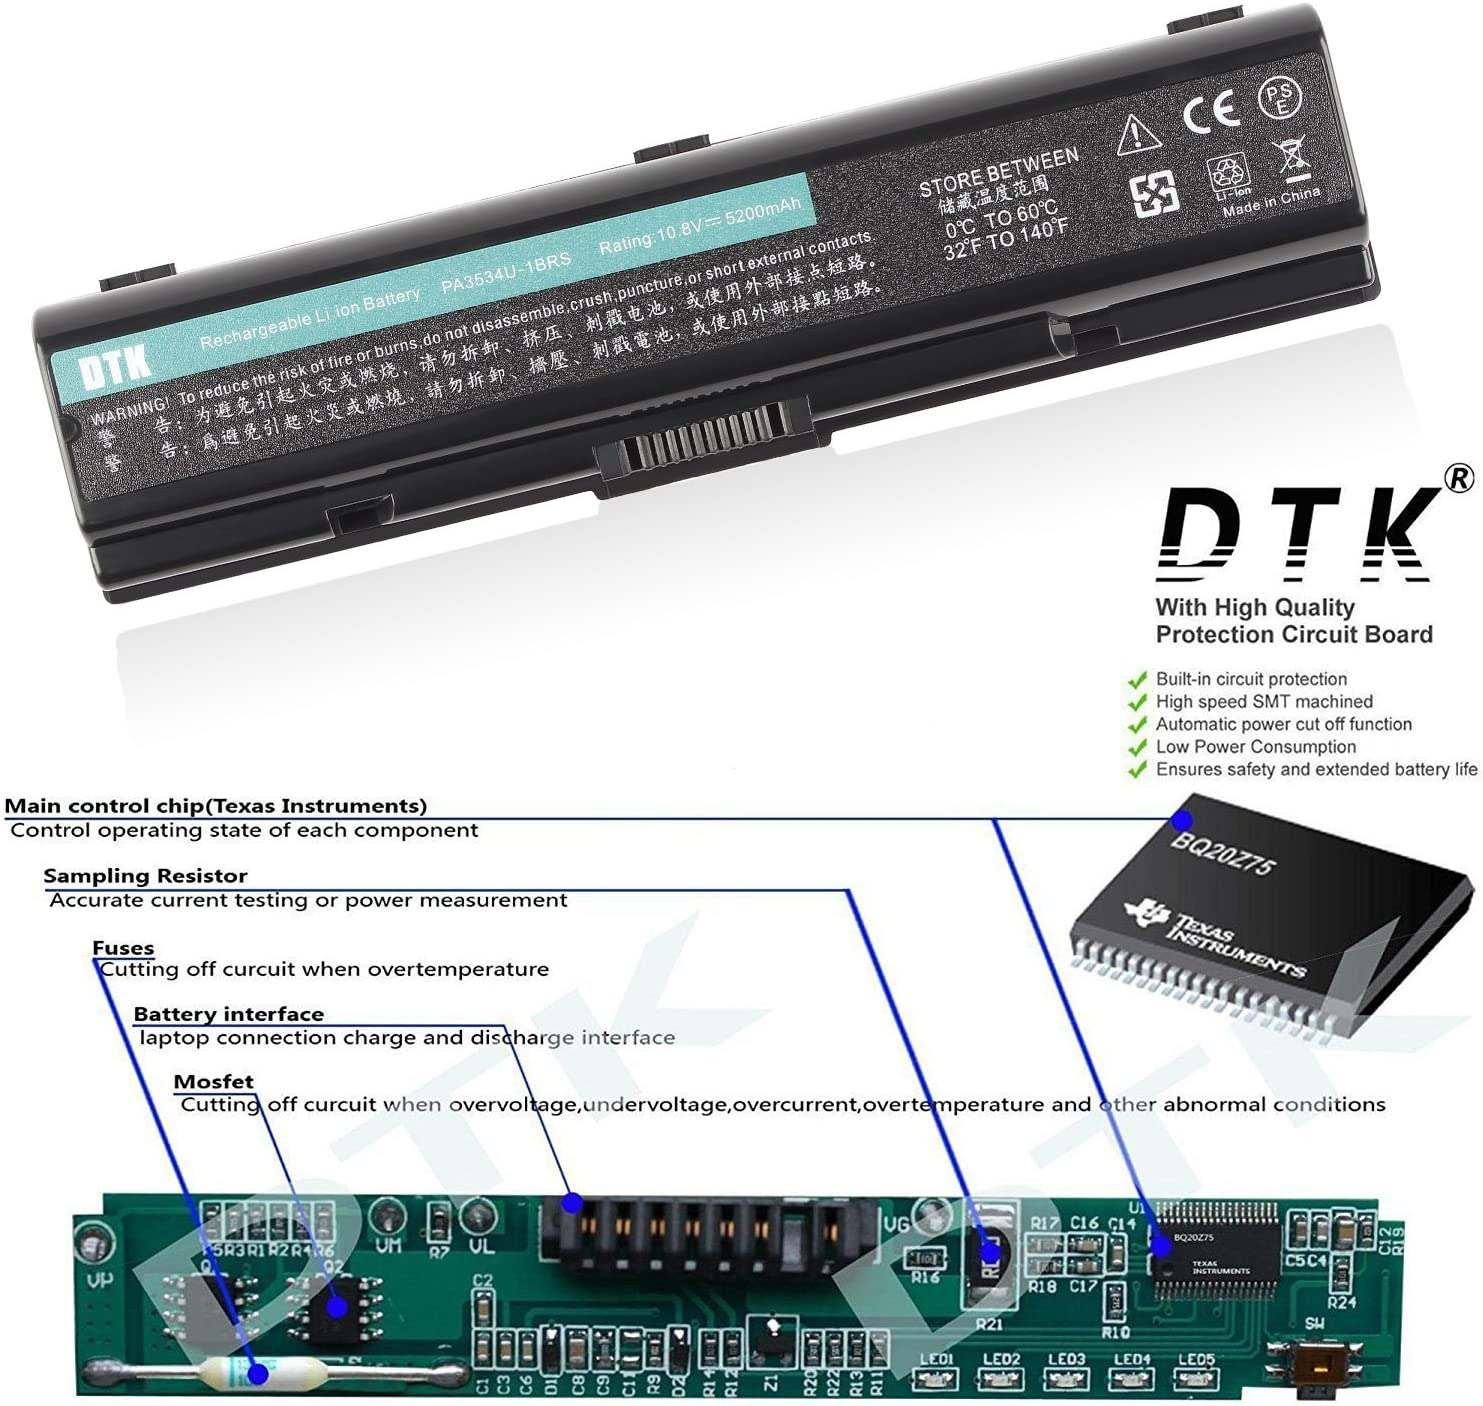 DTK PA3534U-1BRS PA3533U-1BRS PA3535-1BAS High Performance Laptop Battery Replacement for TOSHIBA EQUIUM SERIES Satellite A200 A300 A500 L200 L300 L500 4400MAH 6CELLS